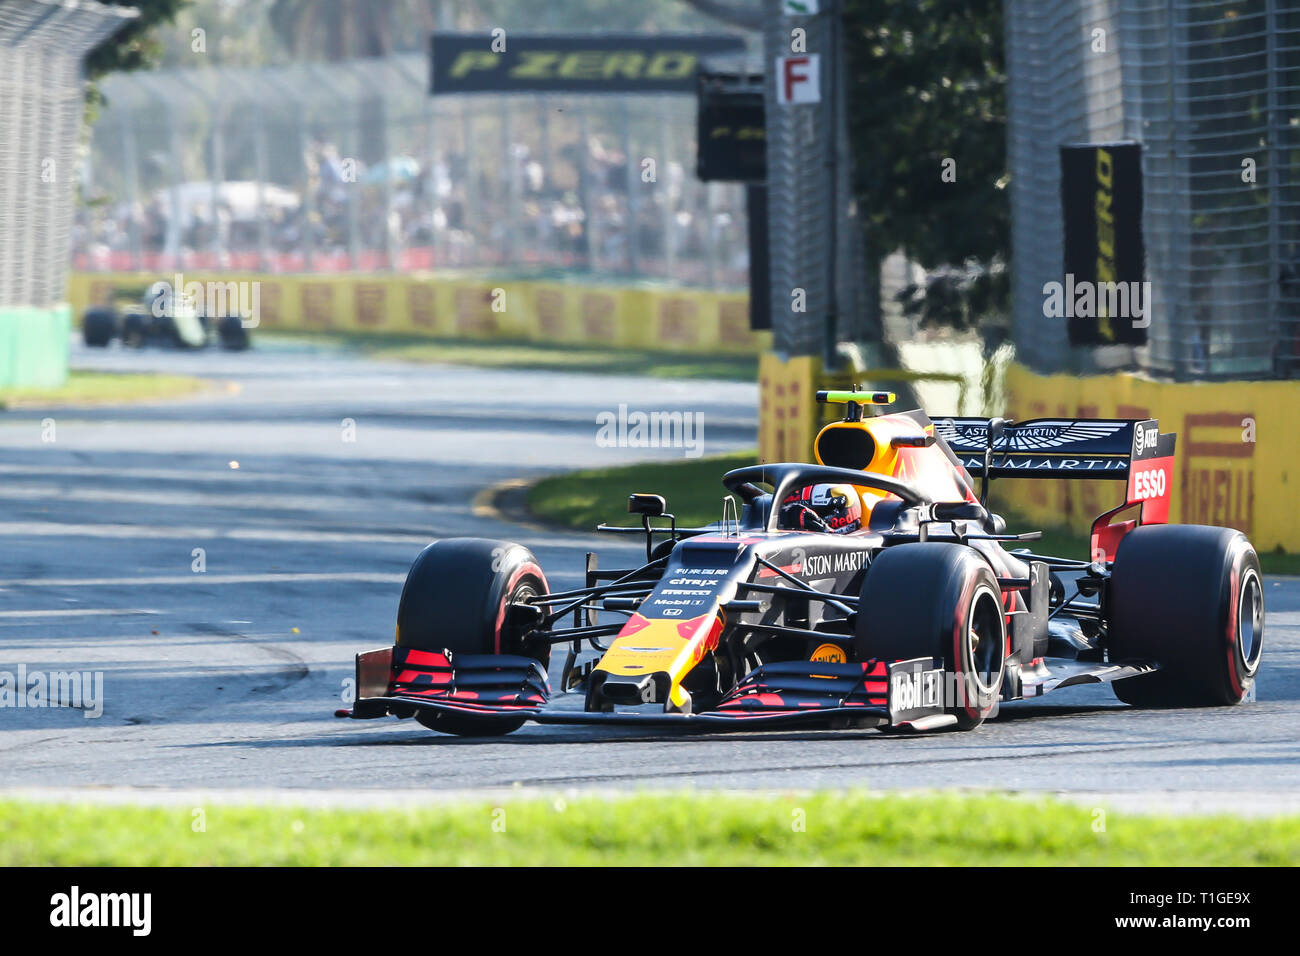 MELBOURNE, AUSTRALIA - MARCH 16: Pierre GASLY of Aston